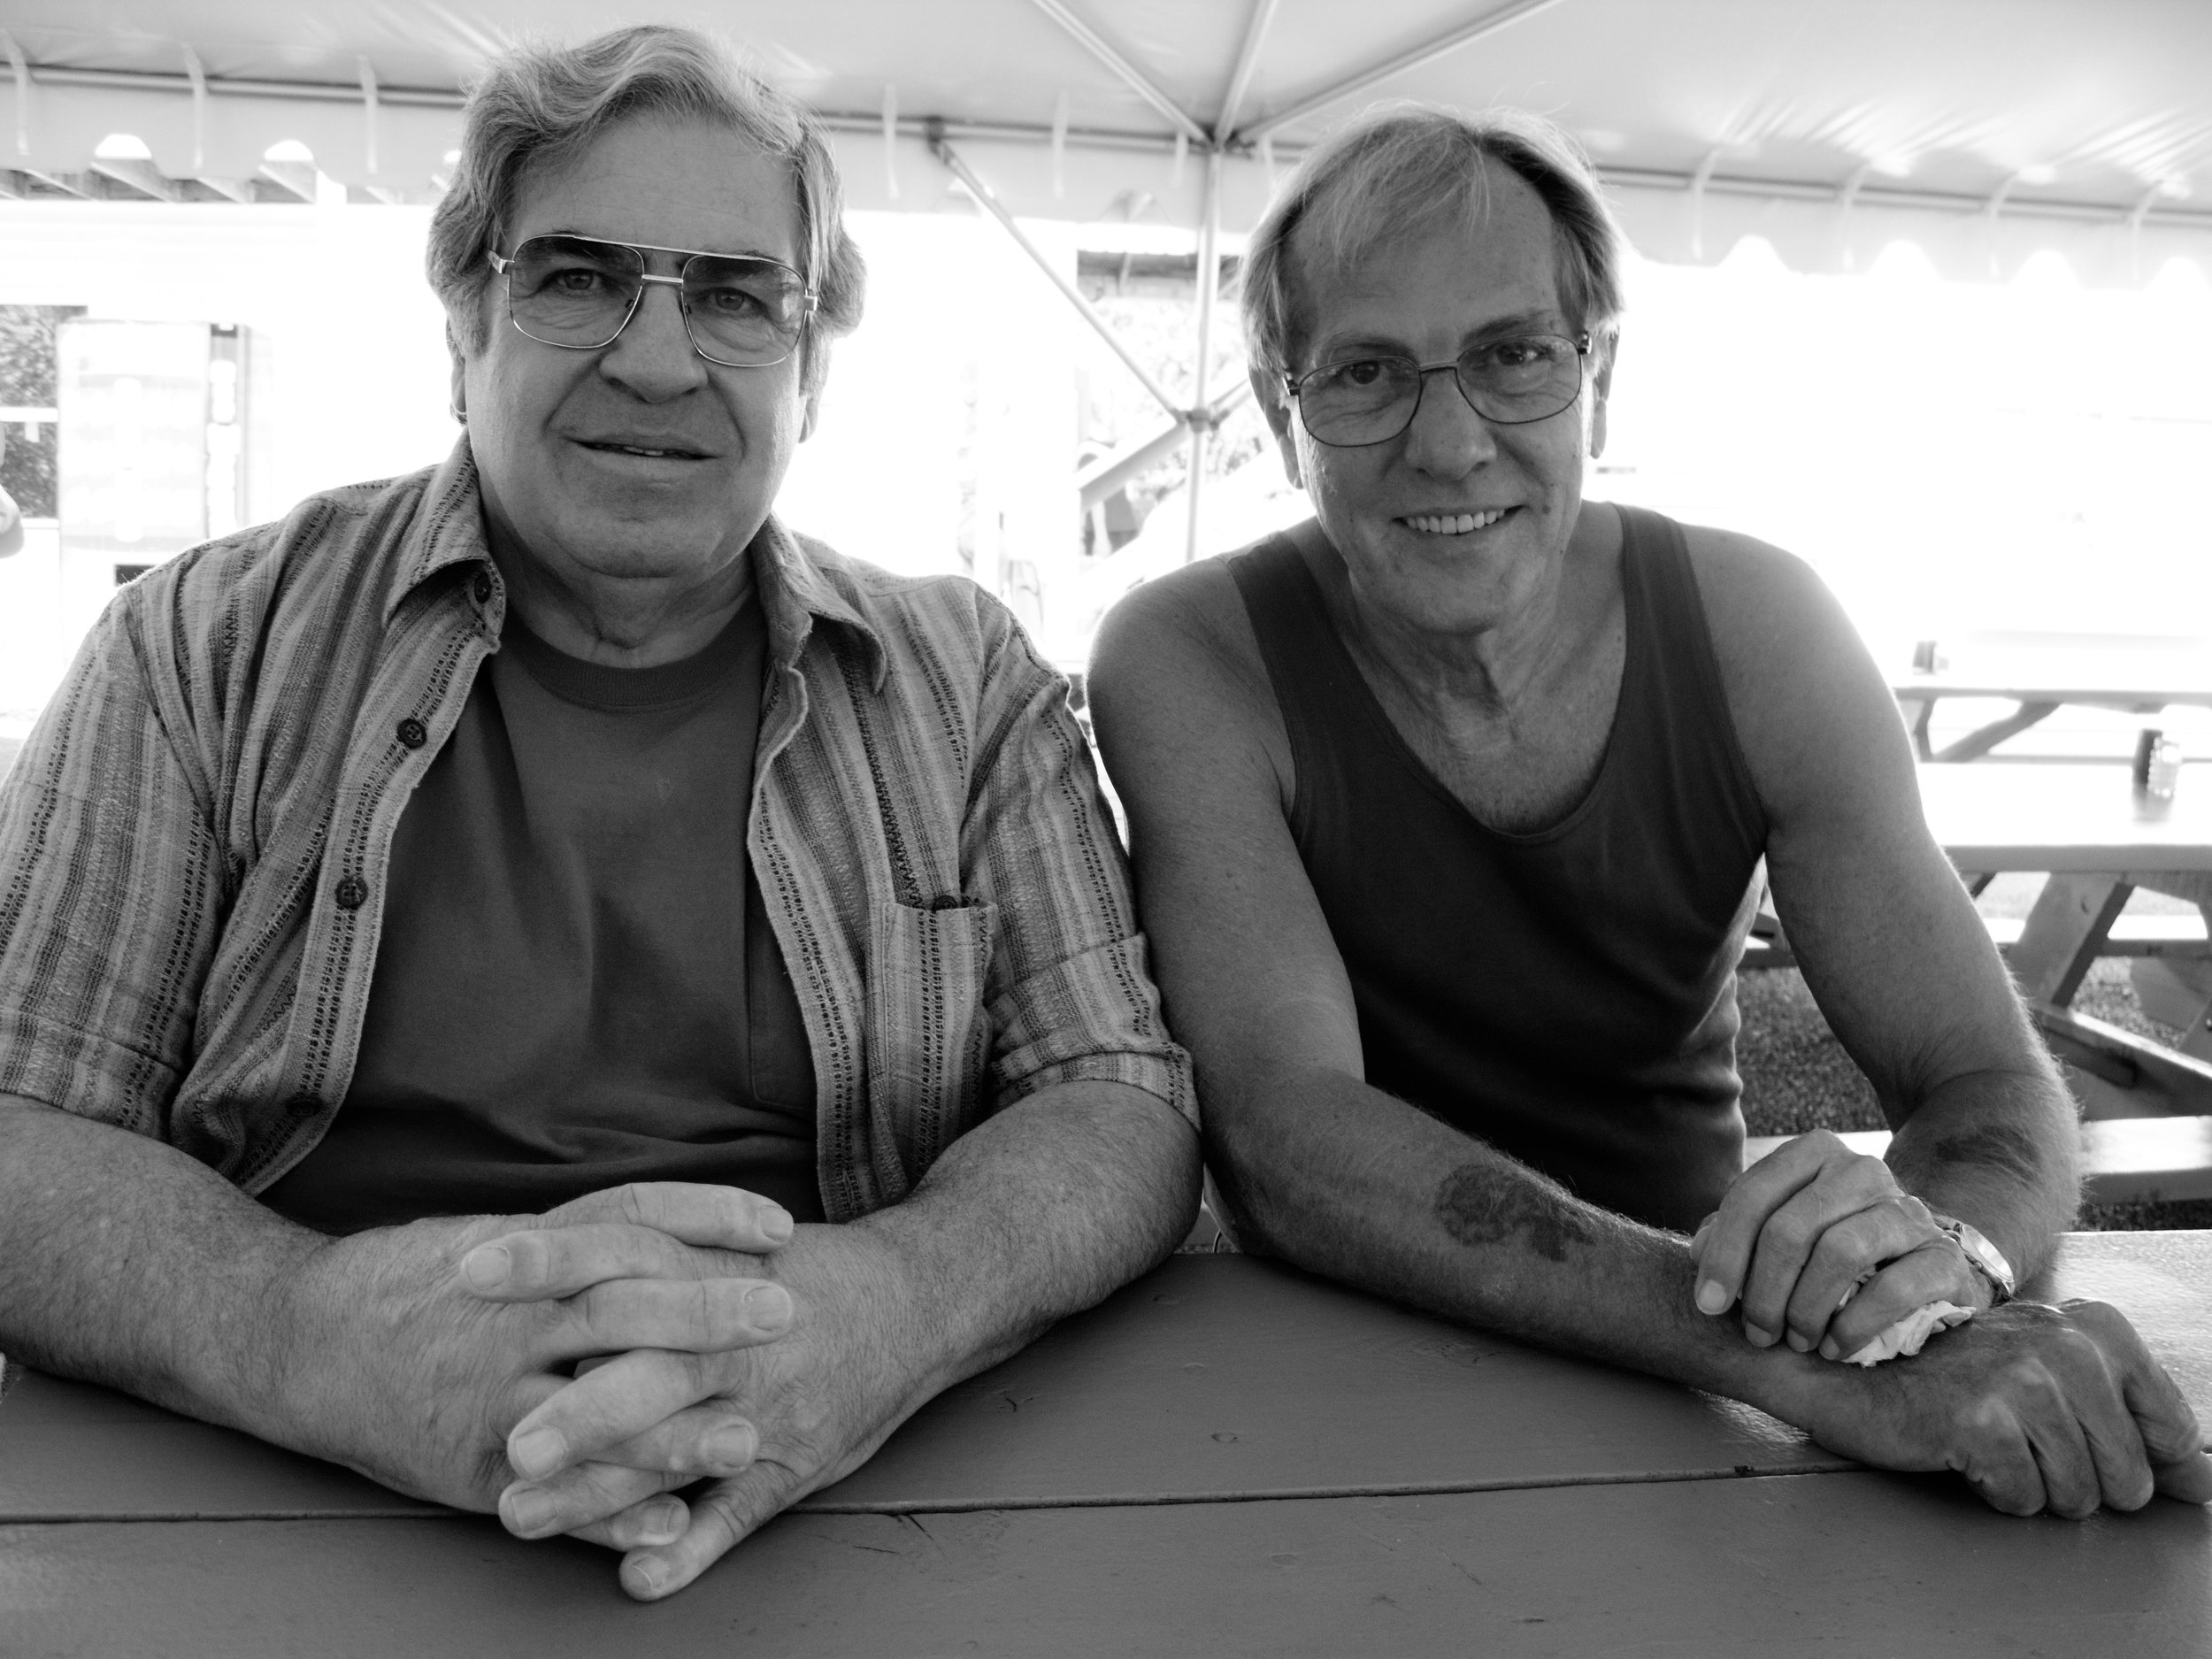 Two masters of the darkroom: Paul Caponigro (left) and George Tice.